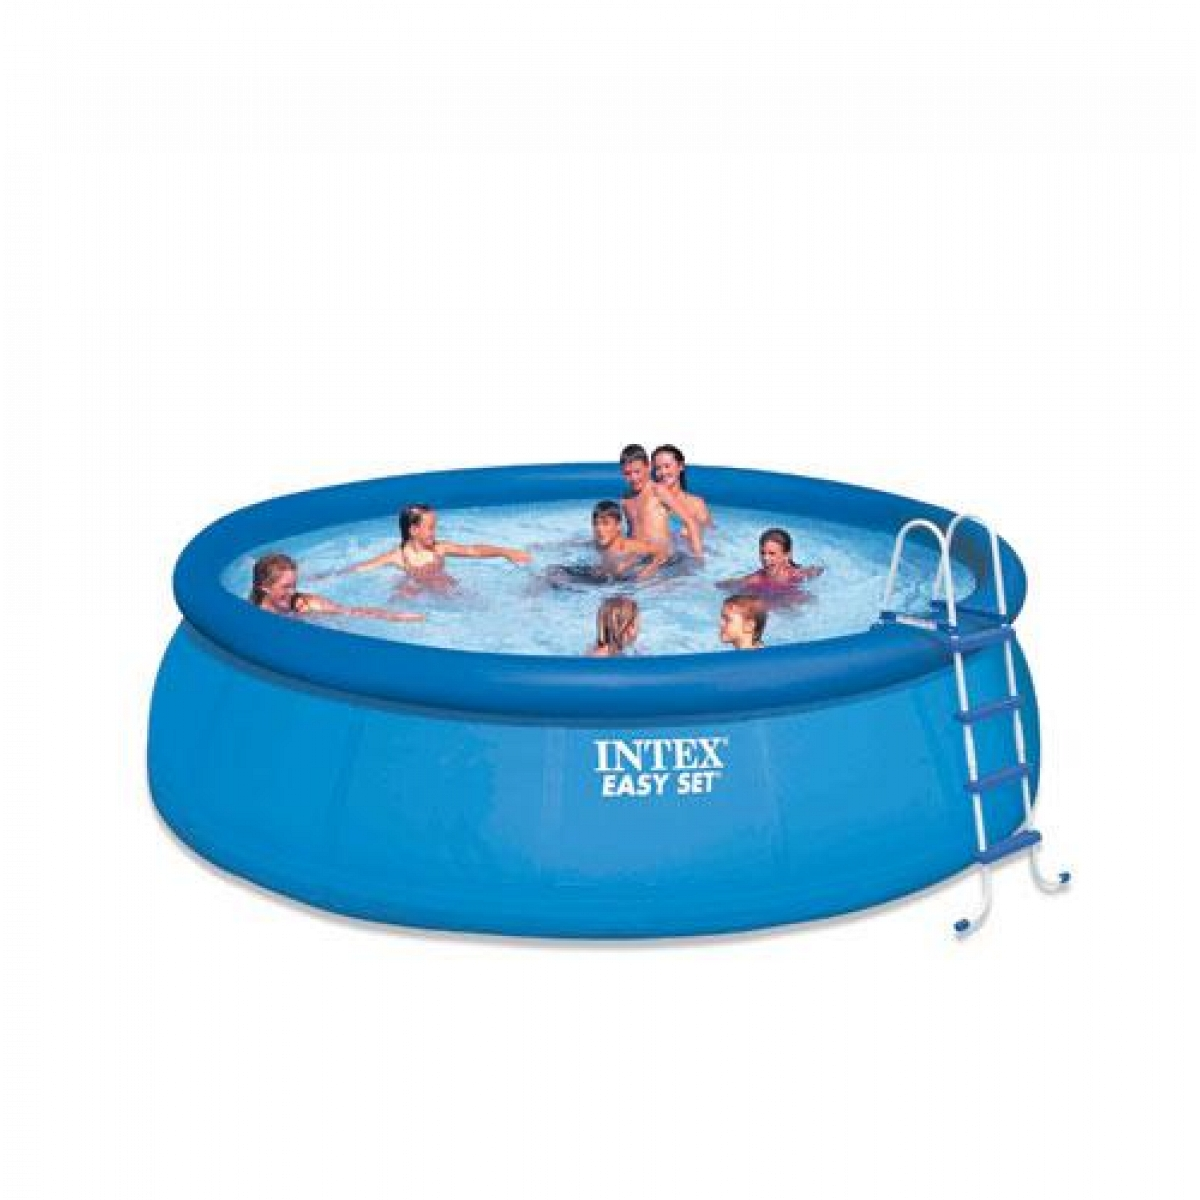 Pool Polyester Rund Round Pool Intex 457x91 Mod Easy Set Intex Piscine Above